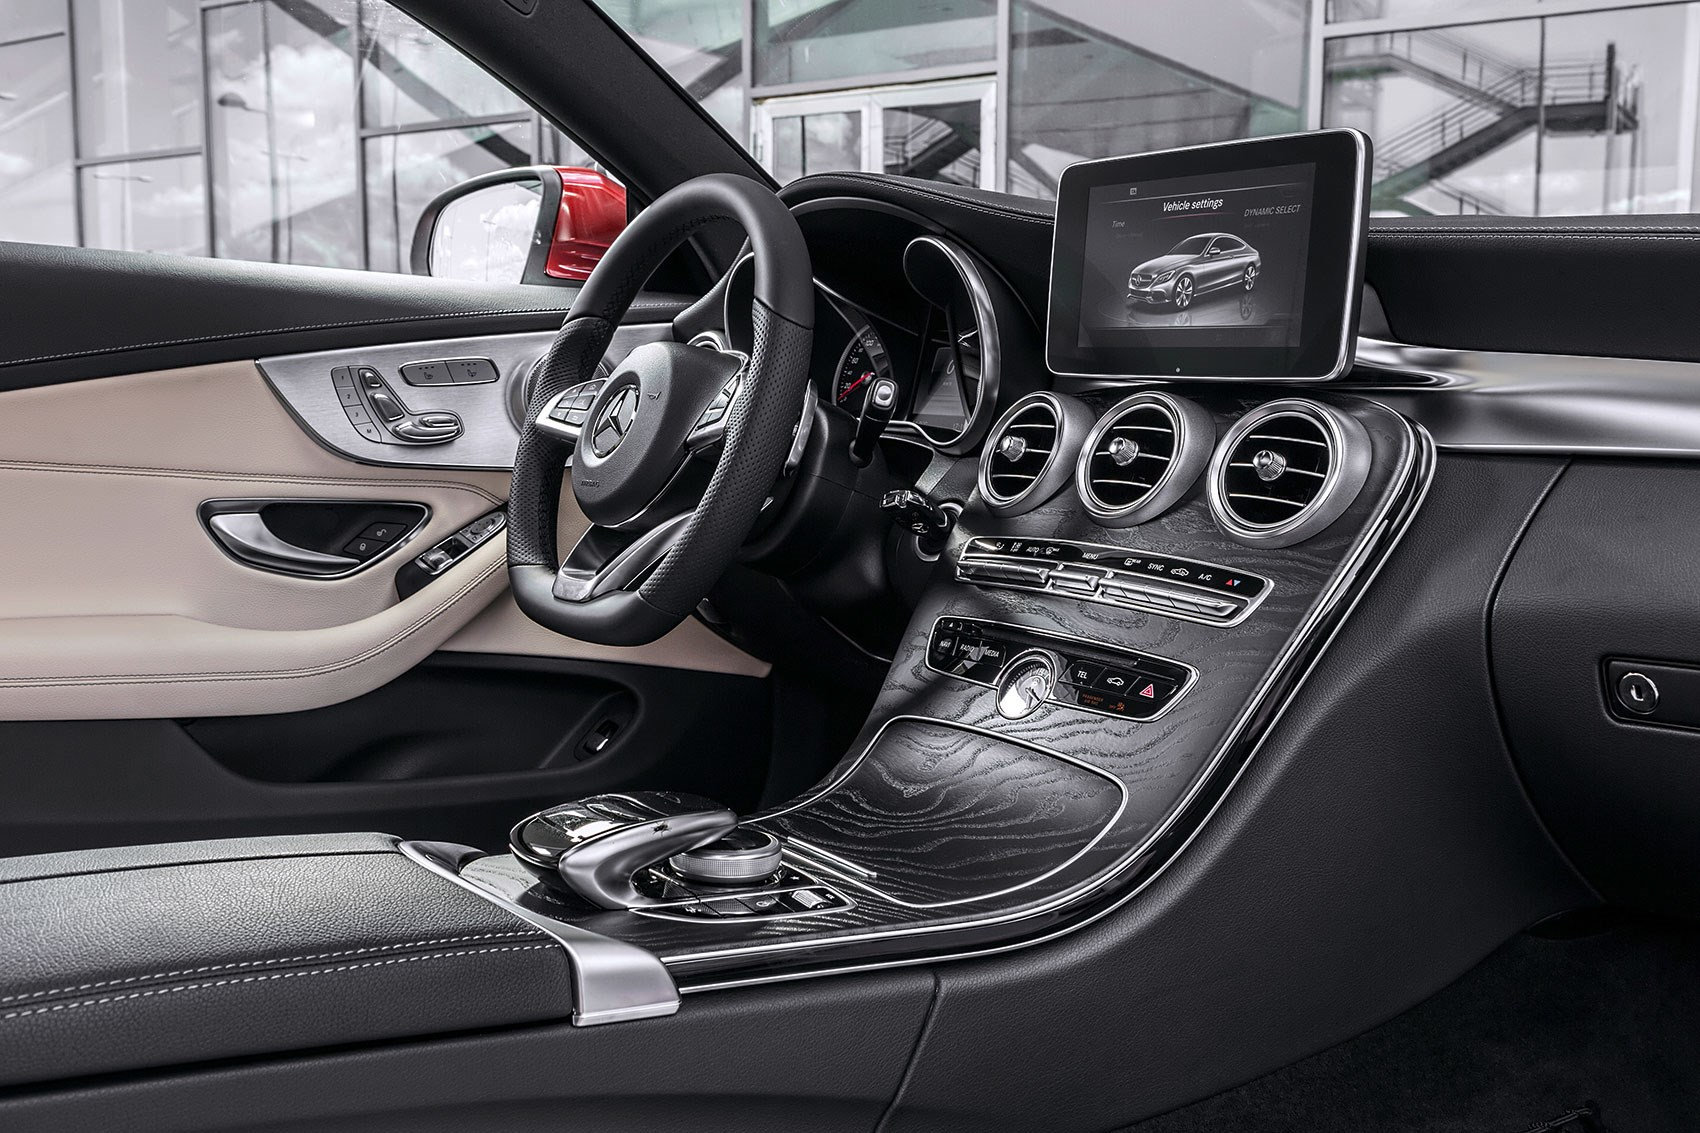 New 2016 mercedes c class coupe takes fashion lessons from for Interieur mercedes c klasse